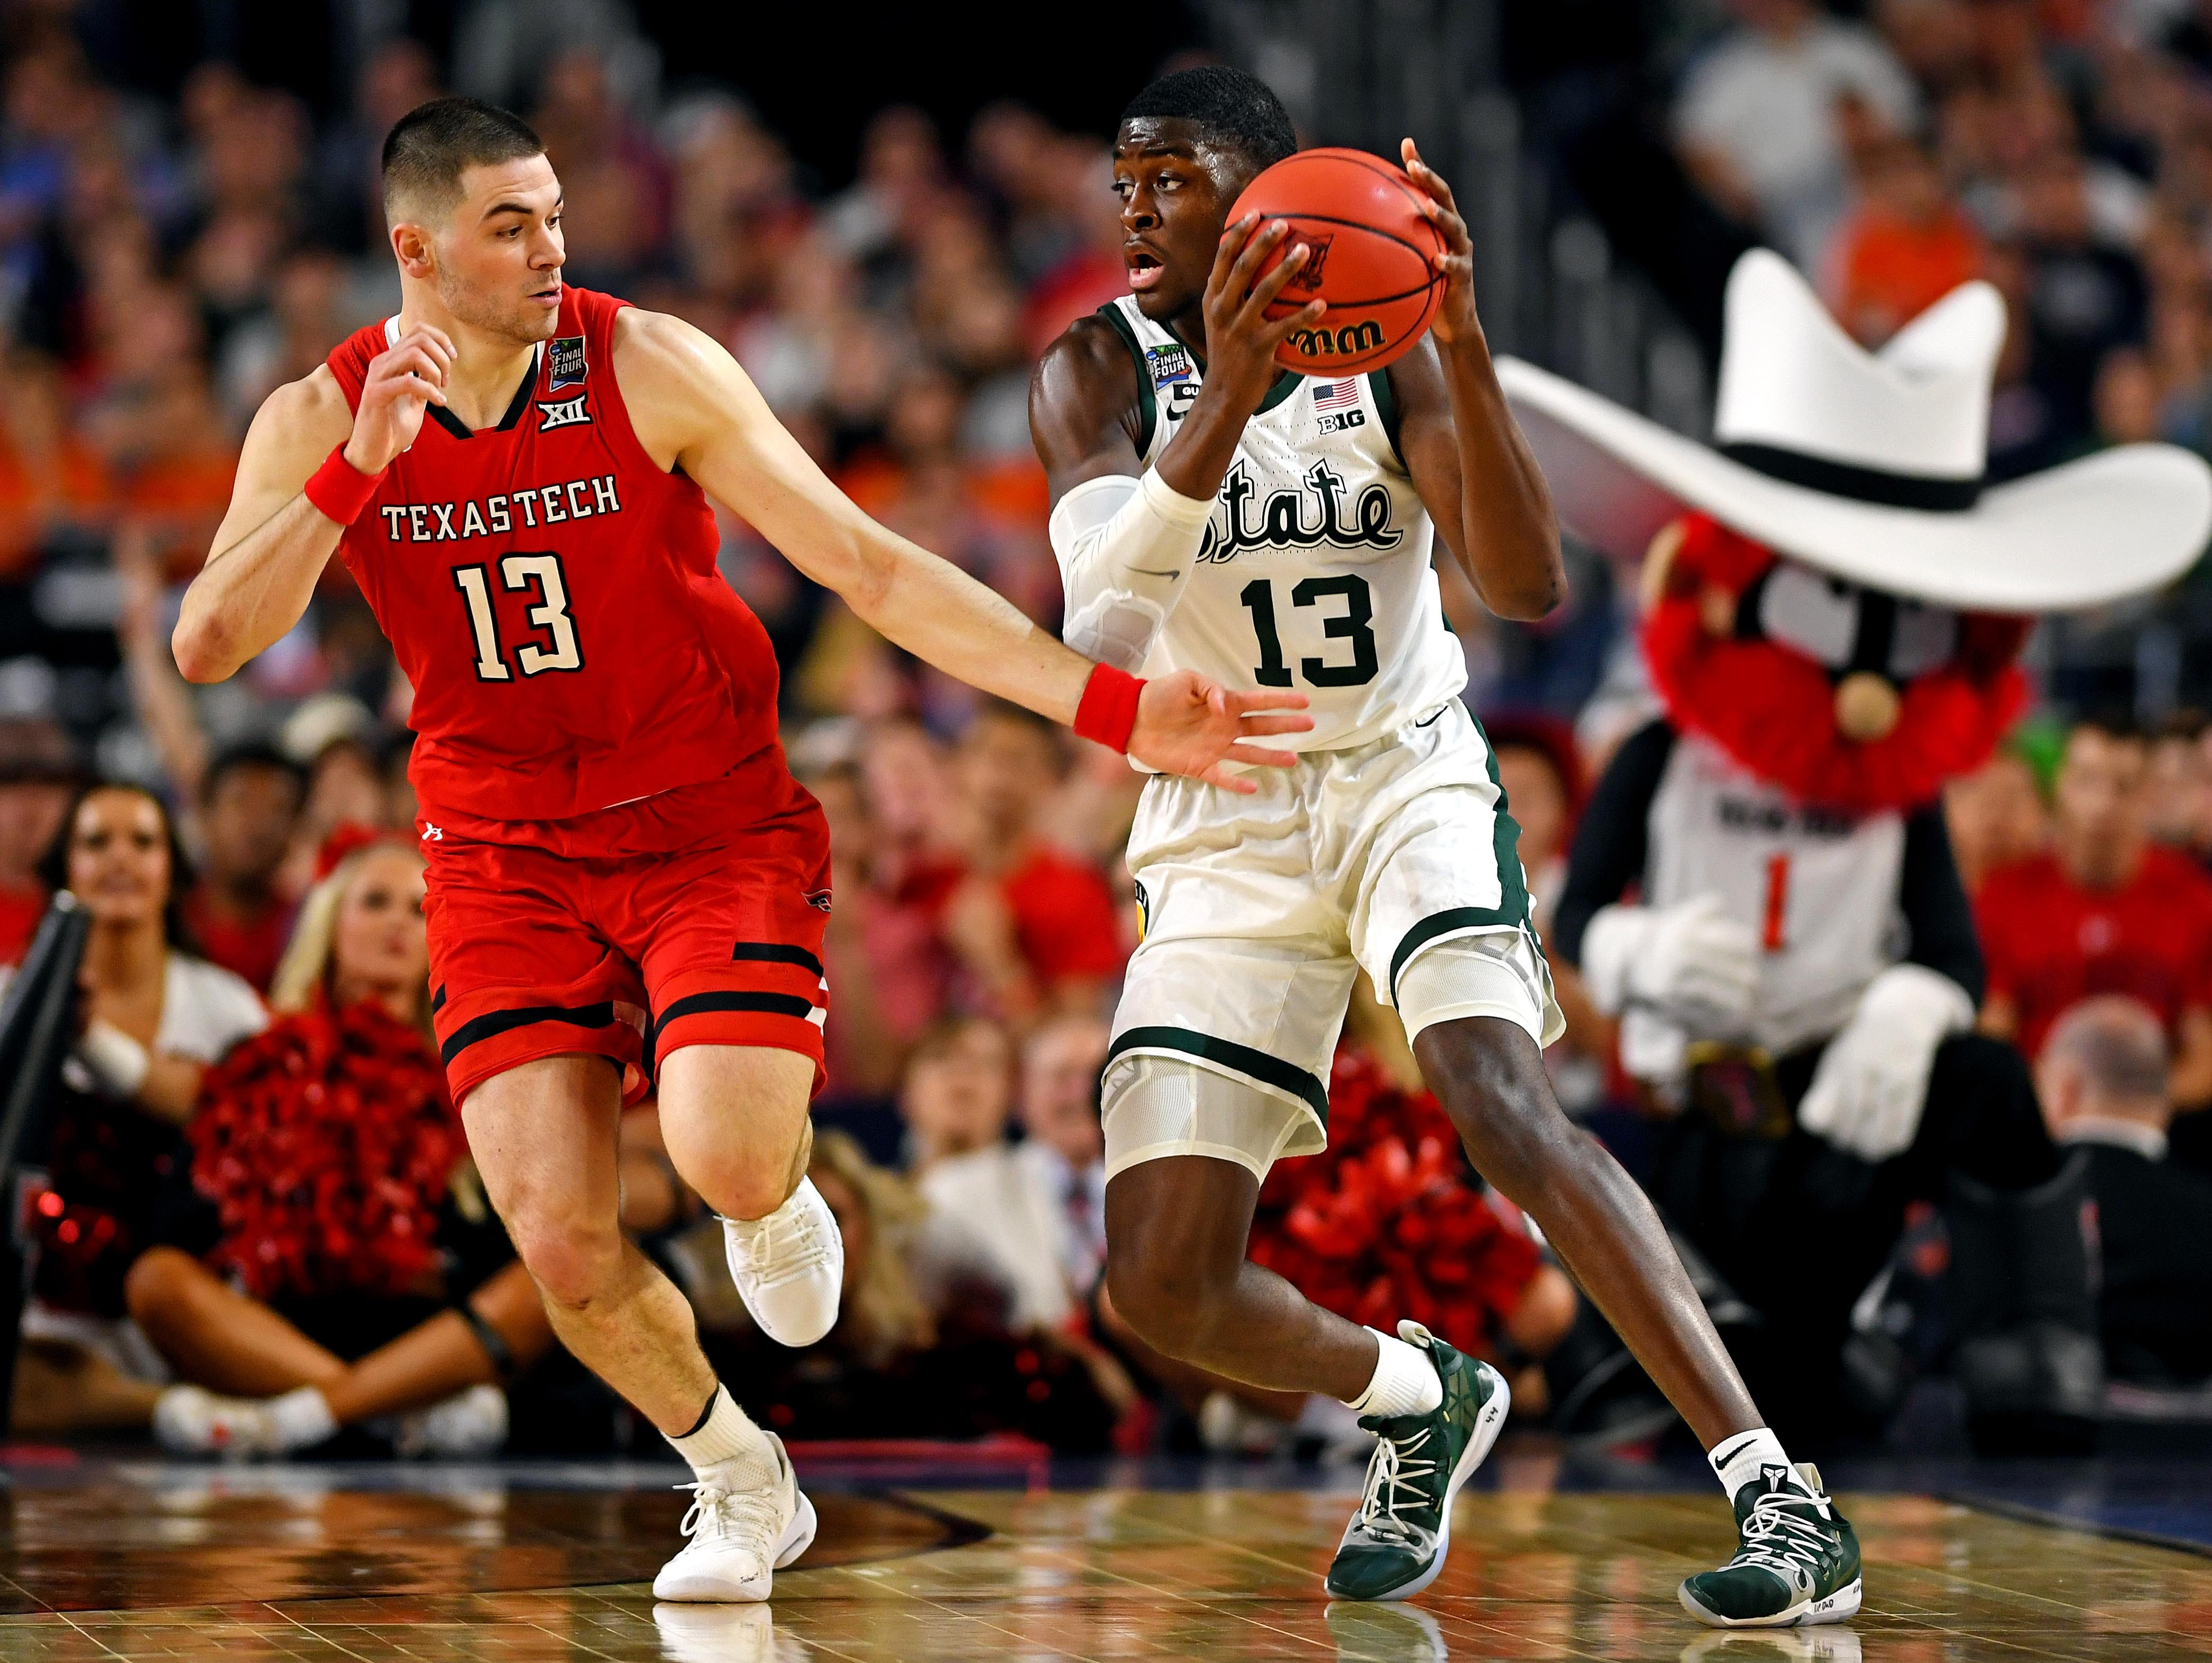 Apr 6, 2019; Minneapolis, MN, USA; Michigan State Spartans forward Gabe Brown (13) handles the ball against Texas Tech Red Raiders guard Matt Mooney (13) during the first half in the semifinals of the 2019 men's Final Four at US Bank Stadium. Mandatory Credit: Bob Donnan-USA TODAY Sports